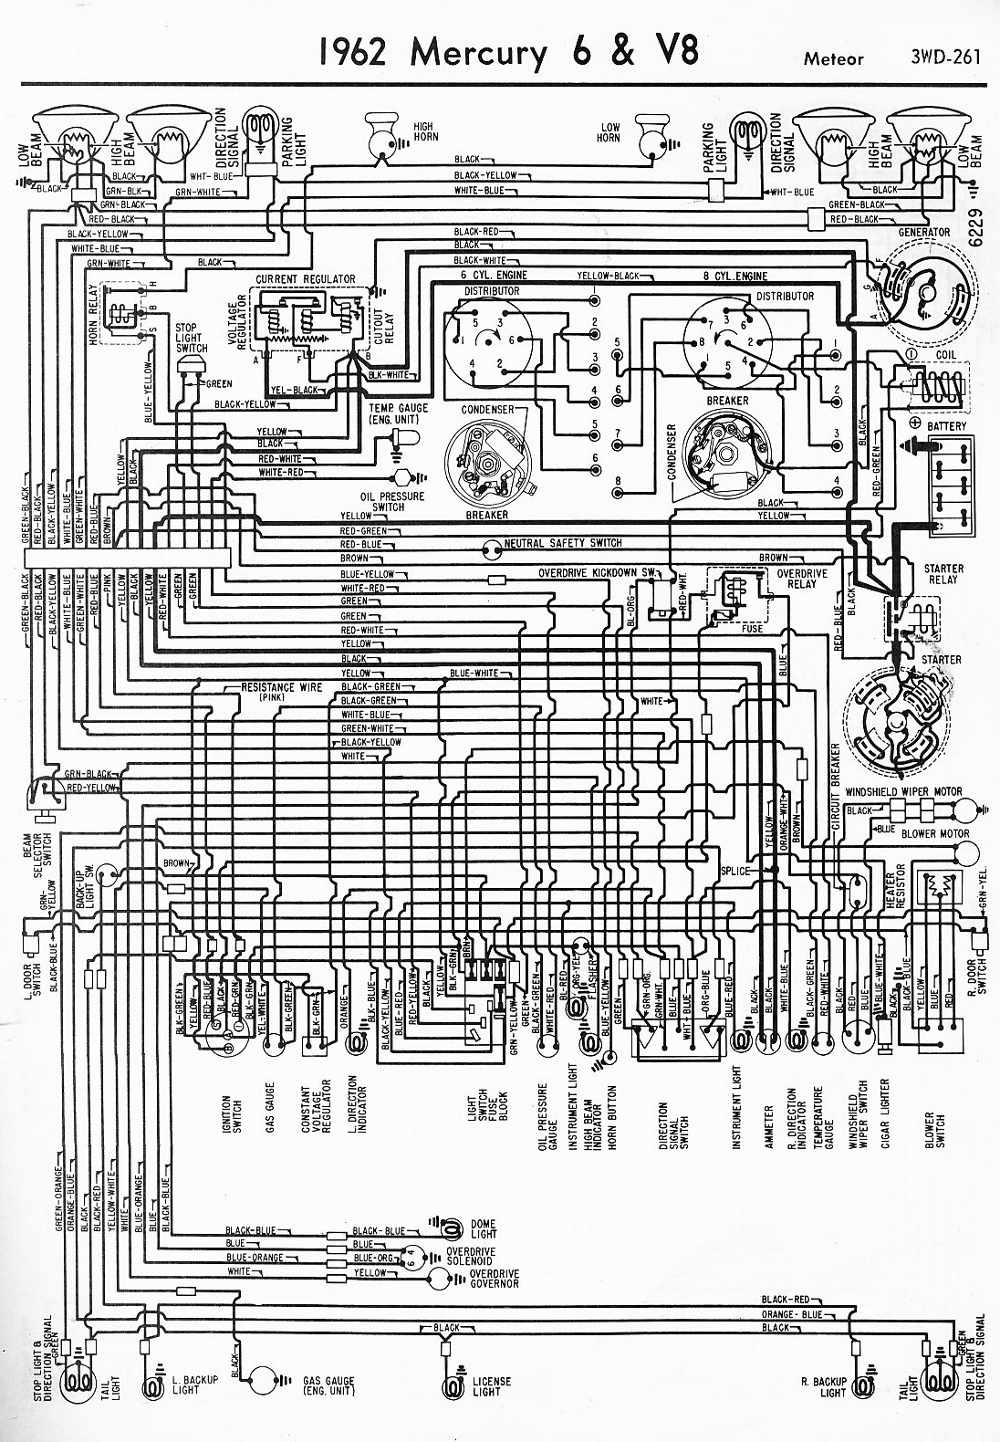 1966 Mercury Wiring Diagram Anything Diagrams 500 1962 6 And V8 Meteor Panel Switch Rh Wiringcolor Blogspot Com 150